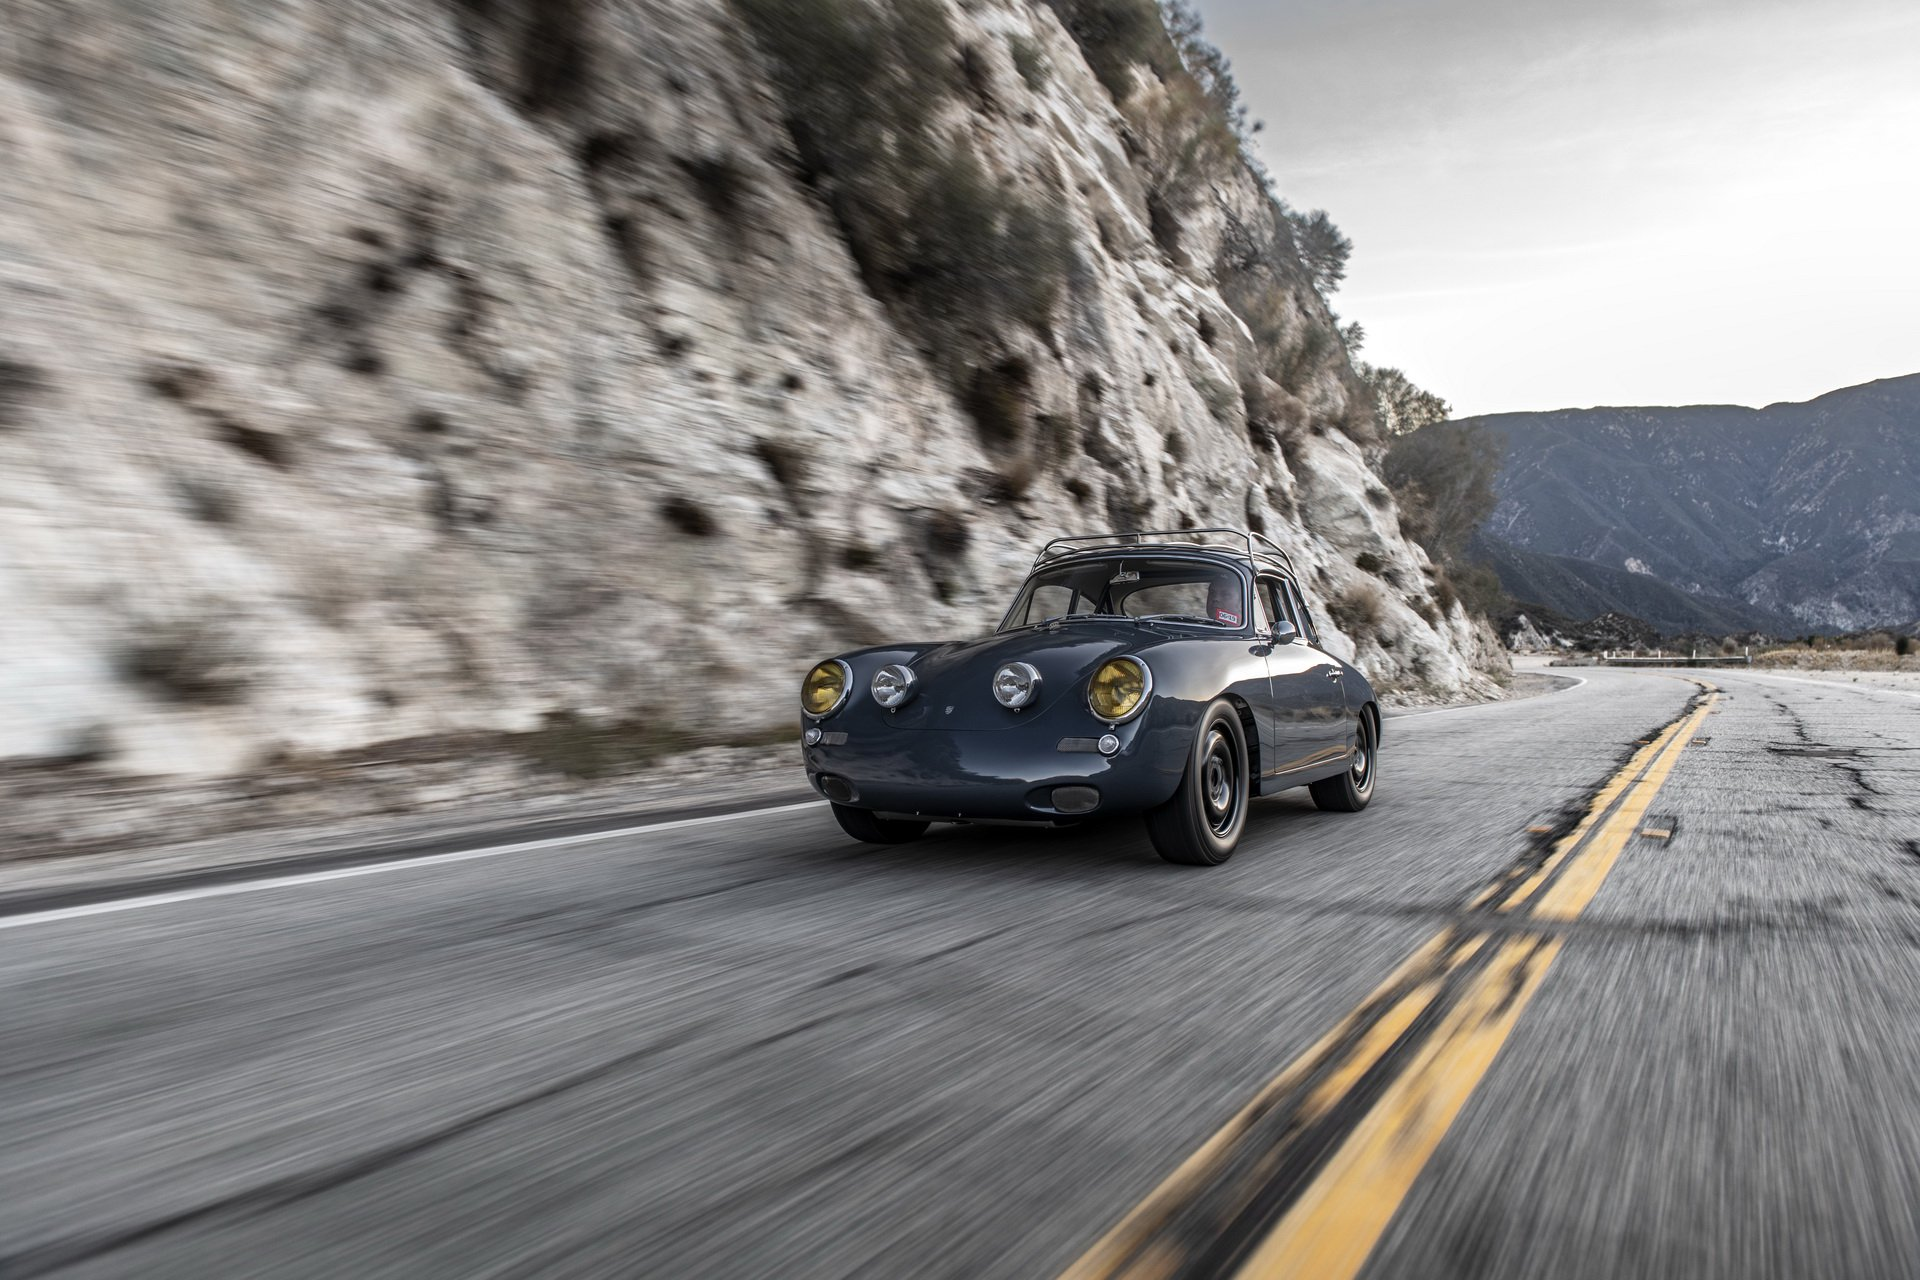 AWD Porsche 356 Coupe by Emory Motorsports (44)